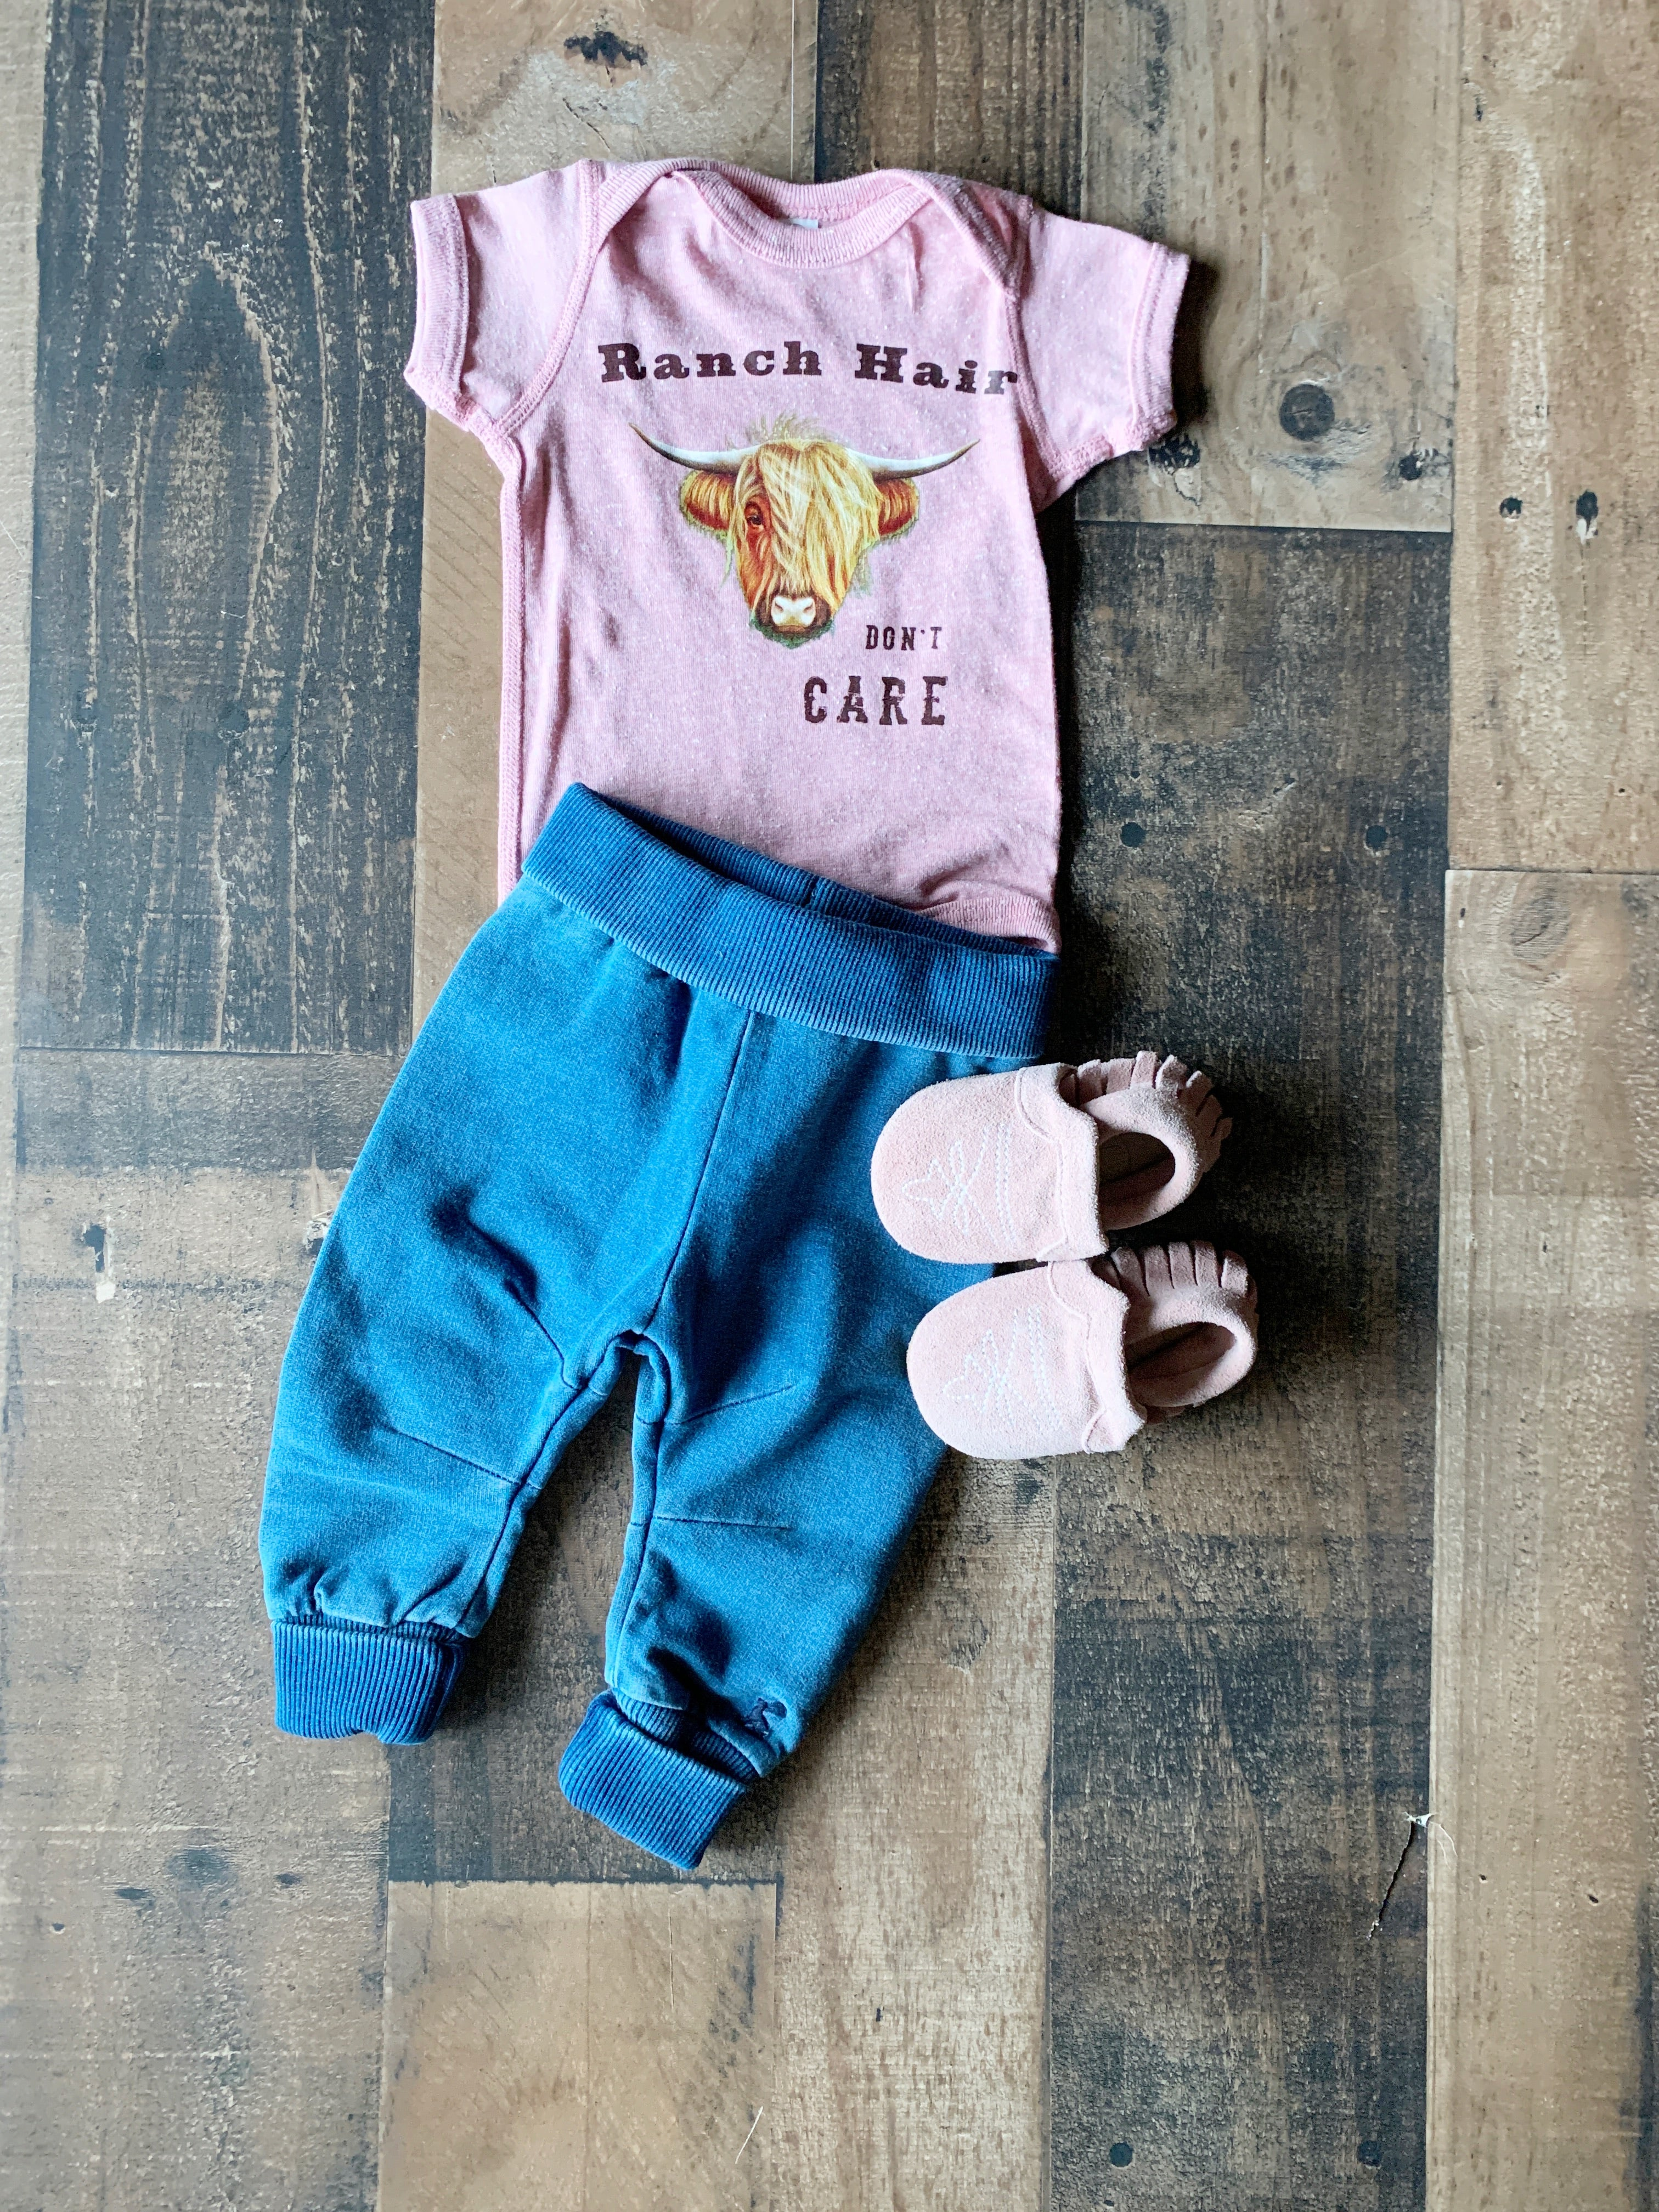 Ranch Hair Don't Care Onesie